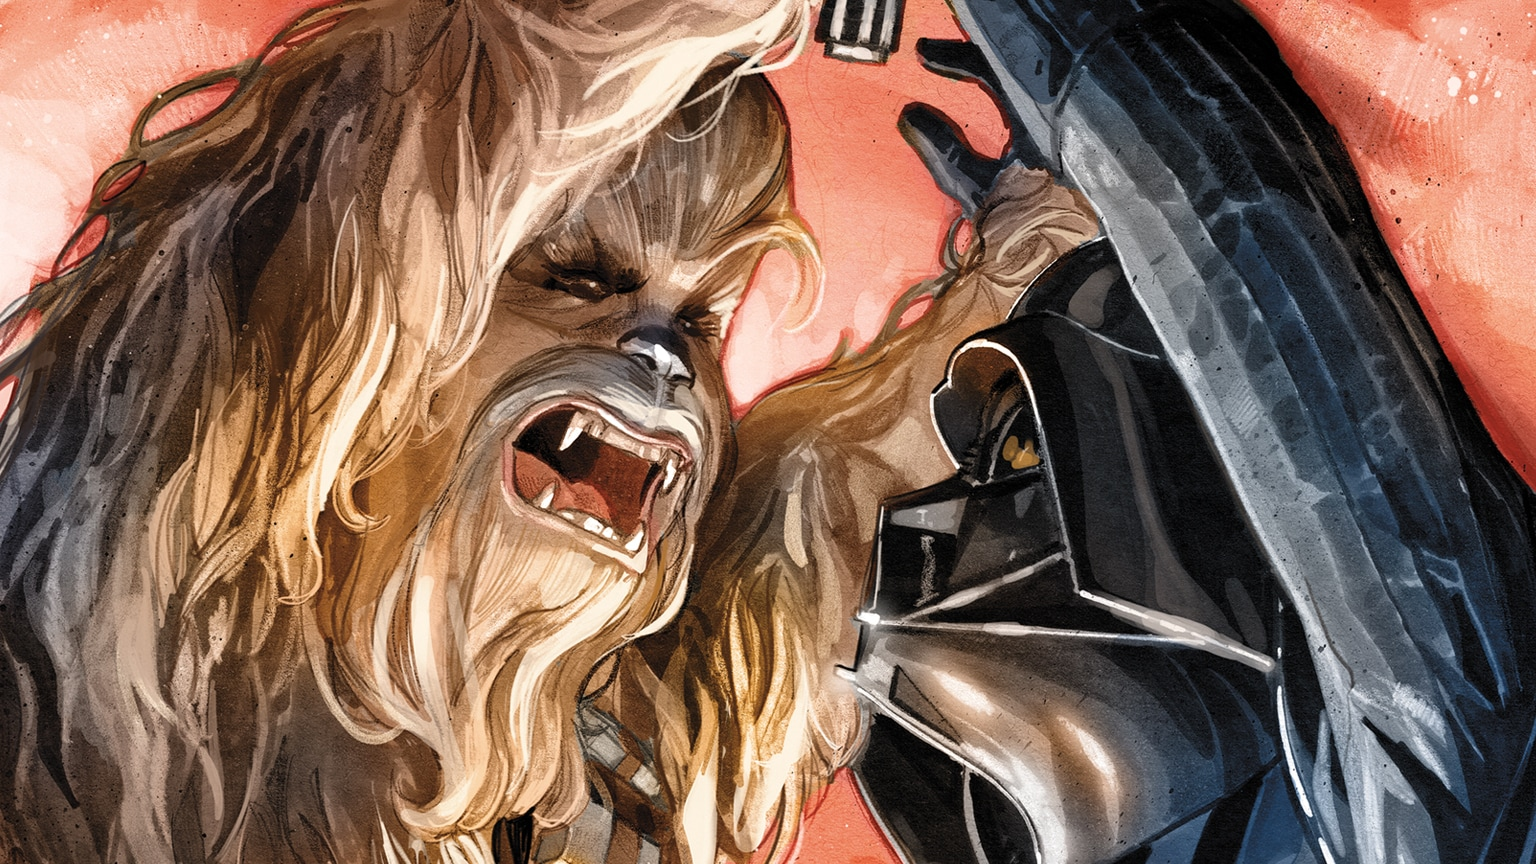 It's Rebels and Rogues Versus the Empire in Marvel's Star Wars #74 – Exclusive